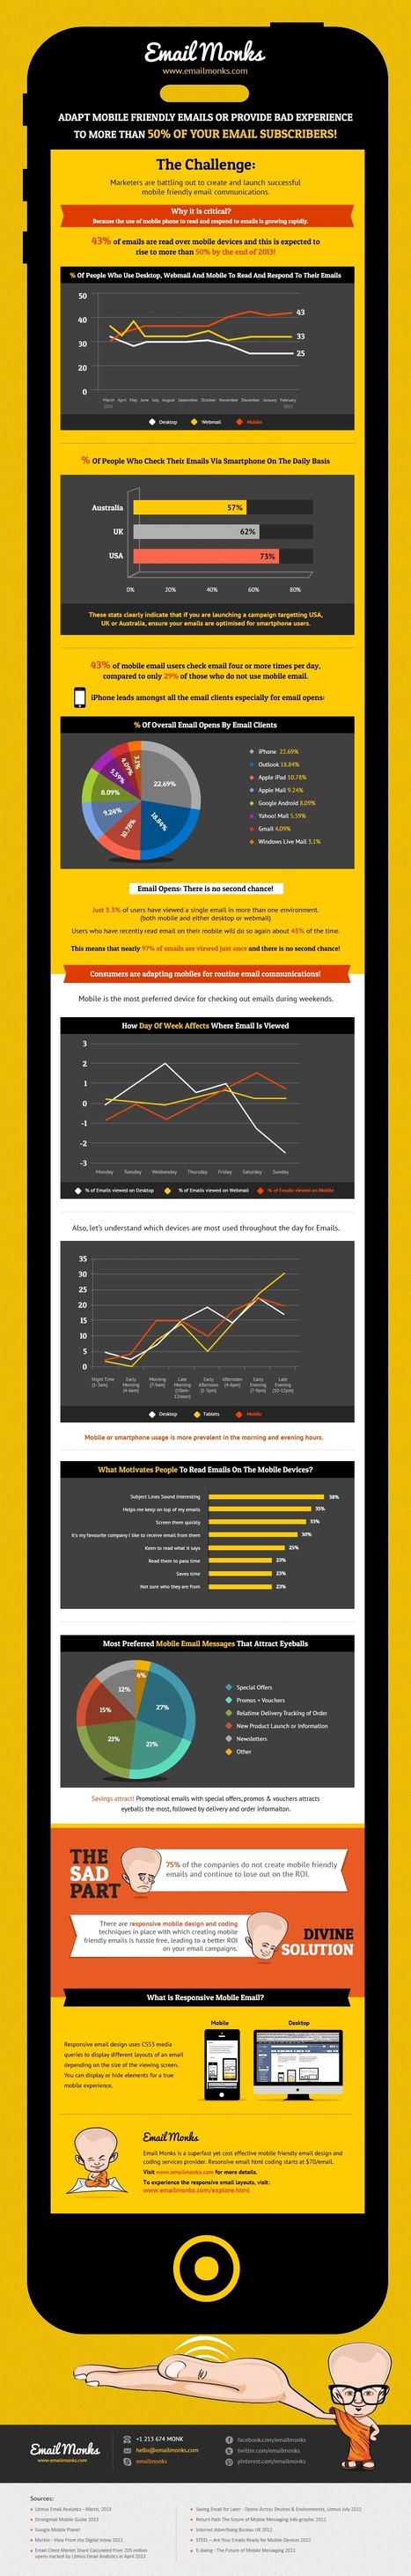 Mobile Friendly Emails [INFOGRAPHIC]   digital marketing strategy   Scoop.it